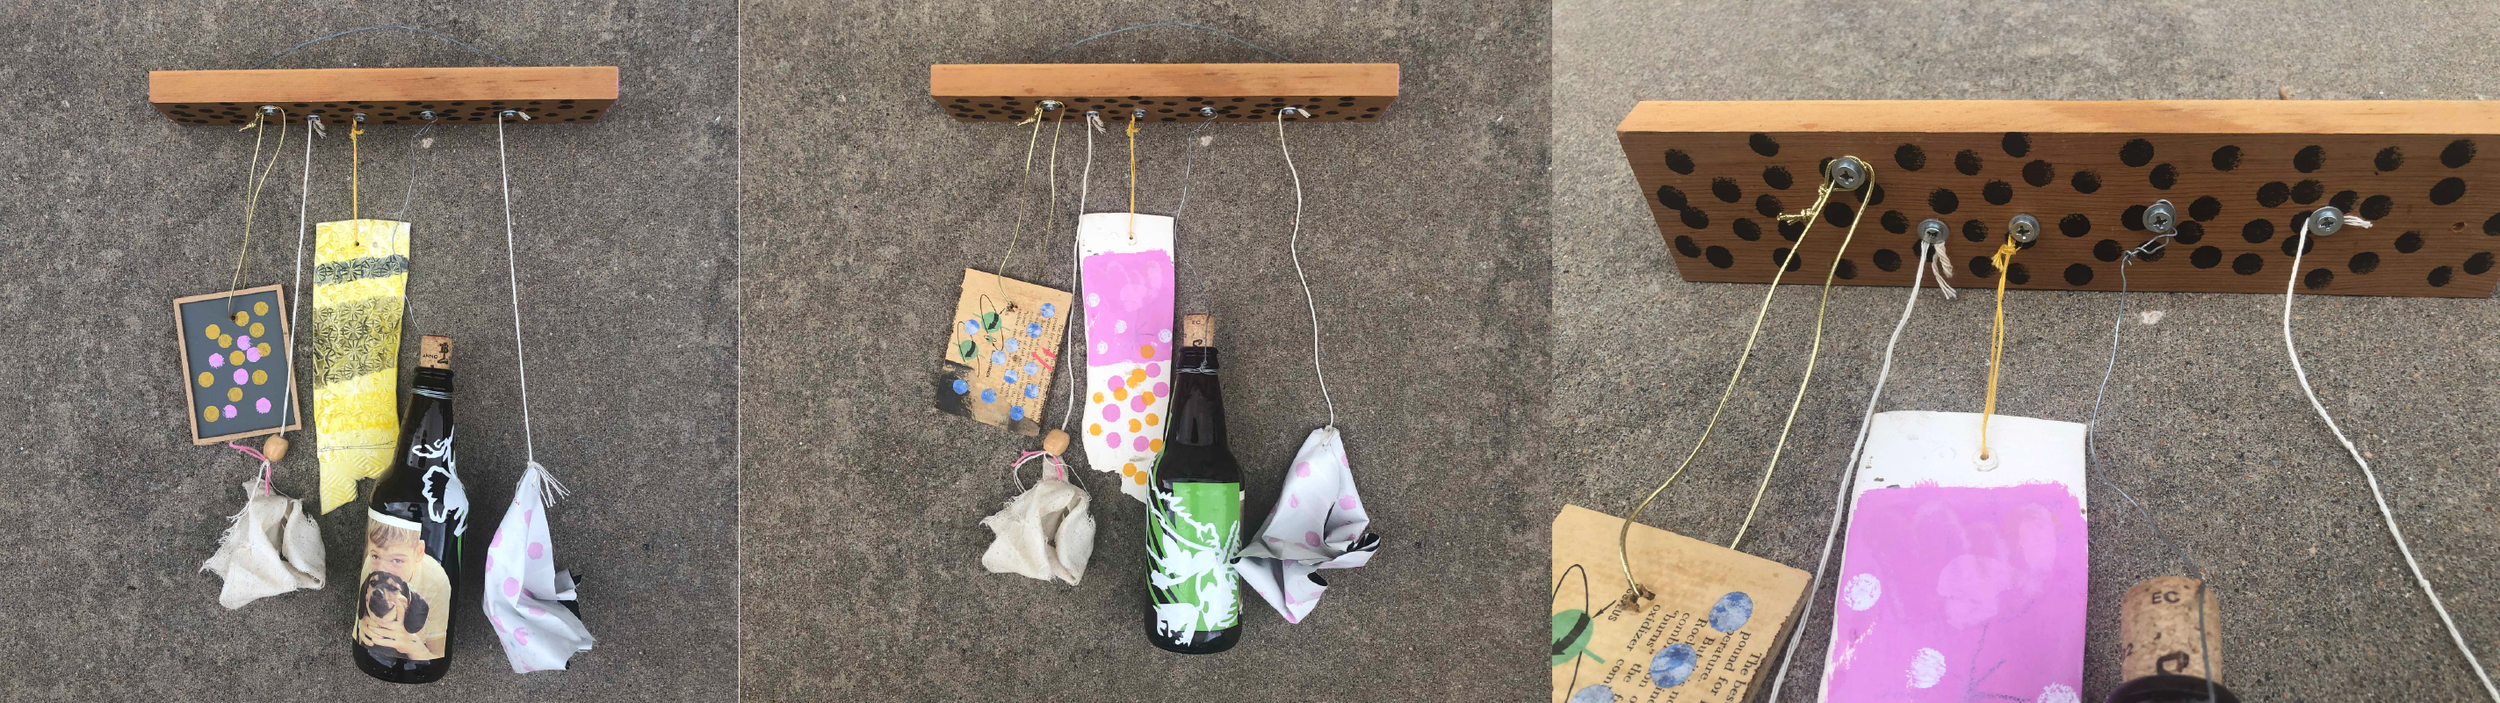 """10 HOS UNTITLED"" 2018 DIMENSIONS VARIABLE- FOUND CLIPPINGS, PREPARED CLIPPINGS, MIXED MEDIA ON FOUND OBJECTS - $80 (REG. $150)"